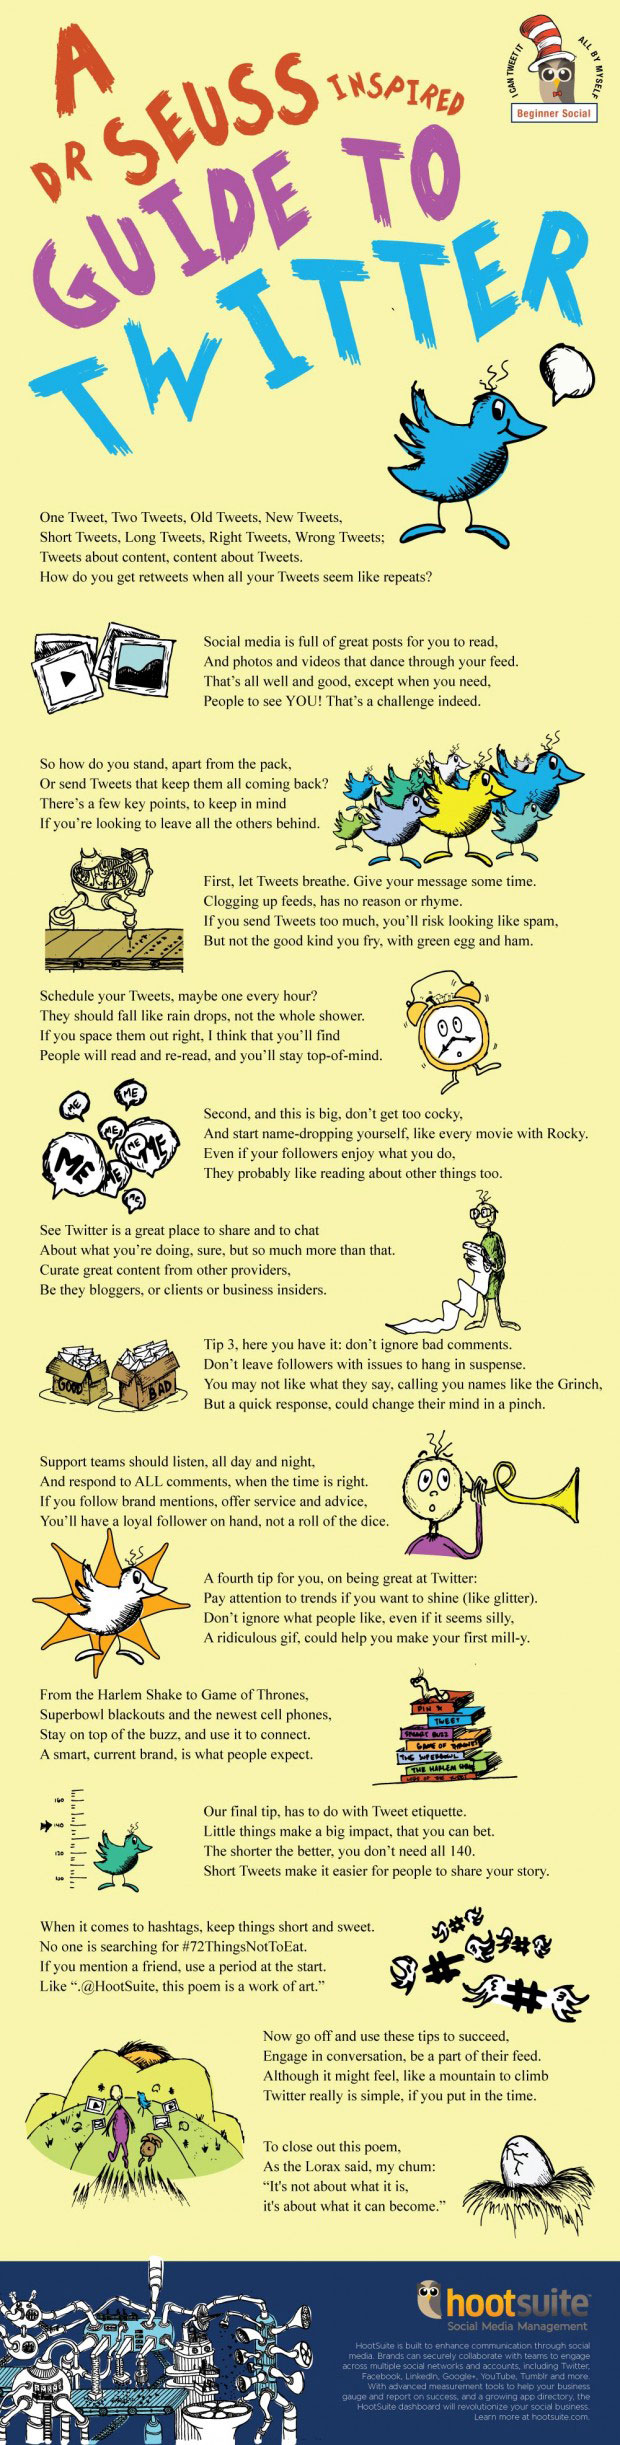 BestBuzz_INFOGRAPHIC_A_Dr_Seuss_Inspired_Guide_to_Twitter